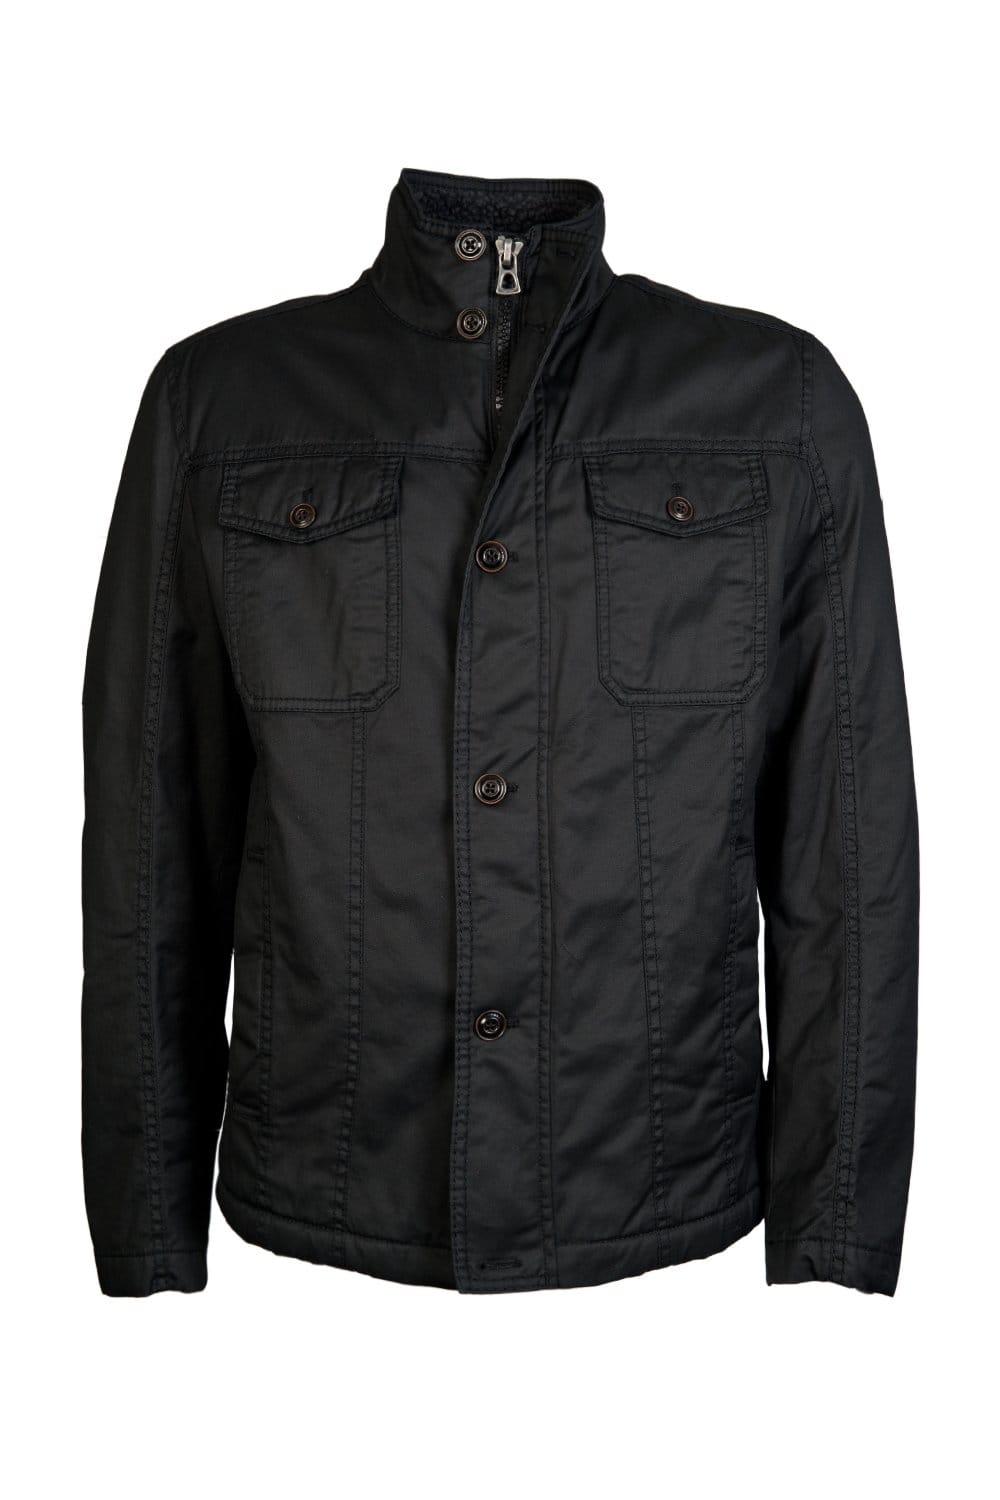 hugo boss designer jacket orfeusw50296710 clothing